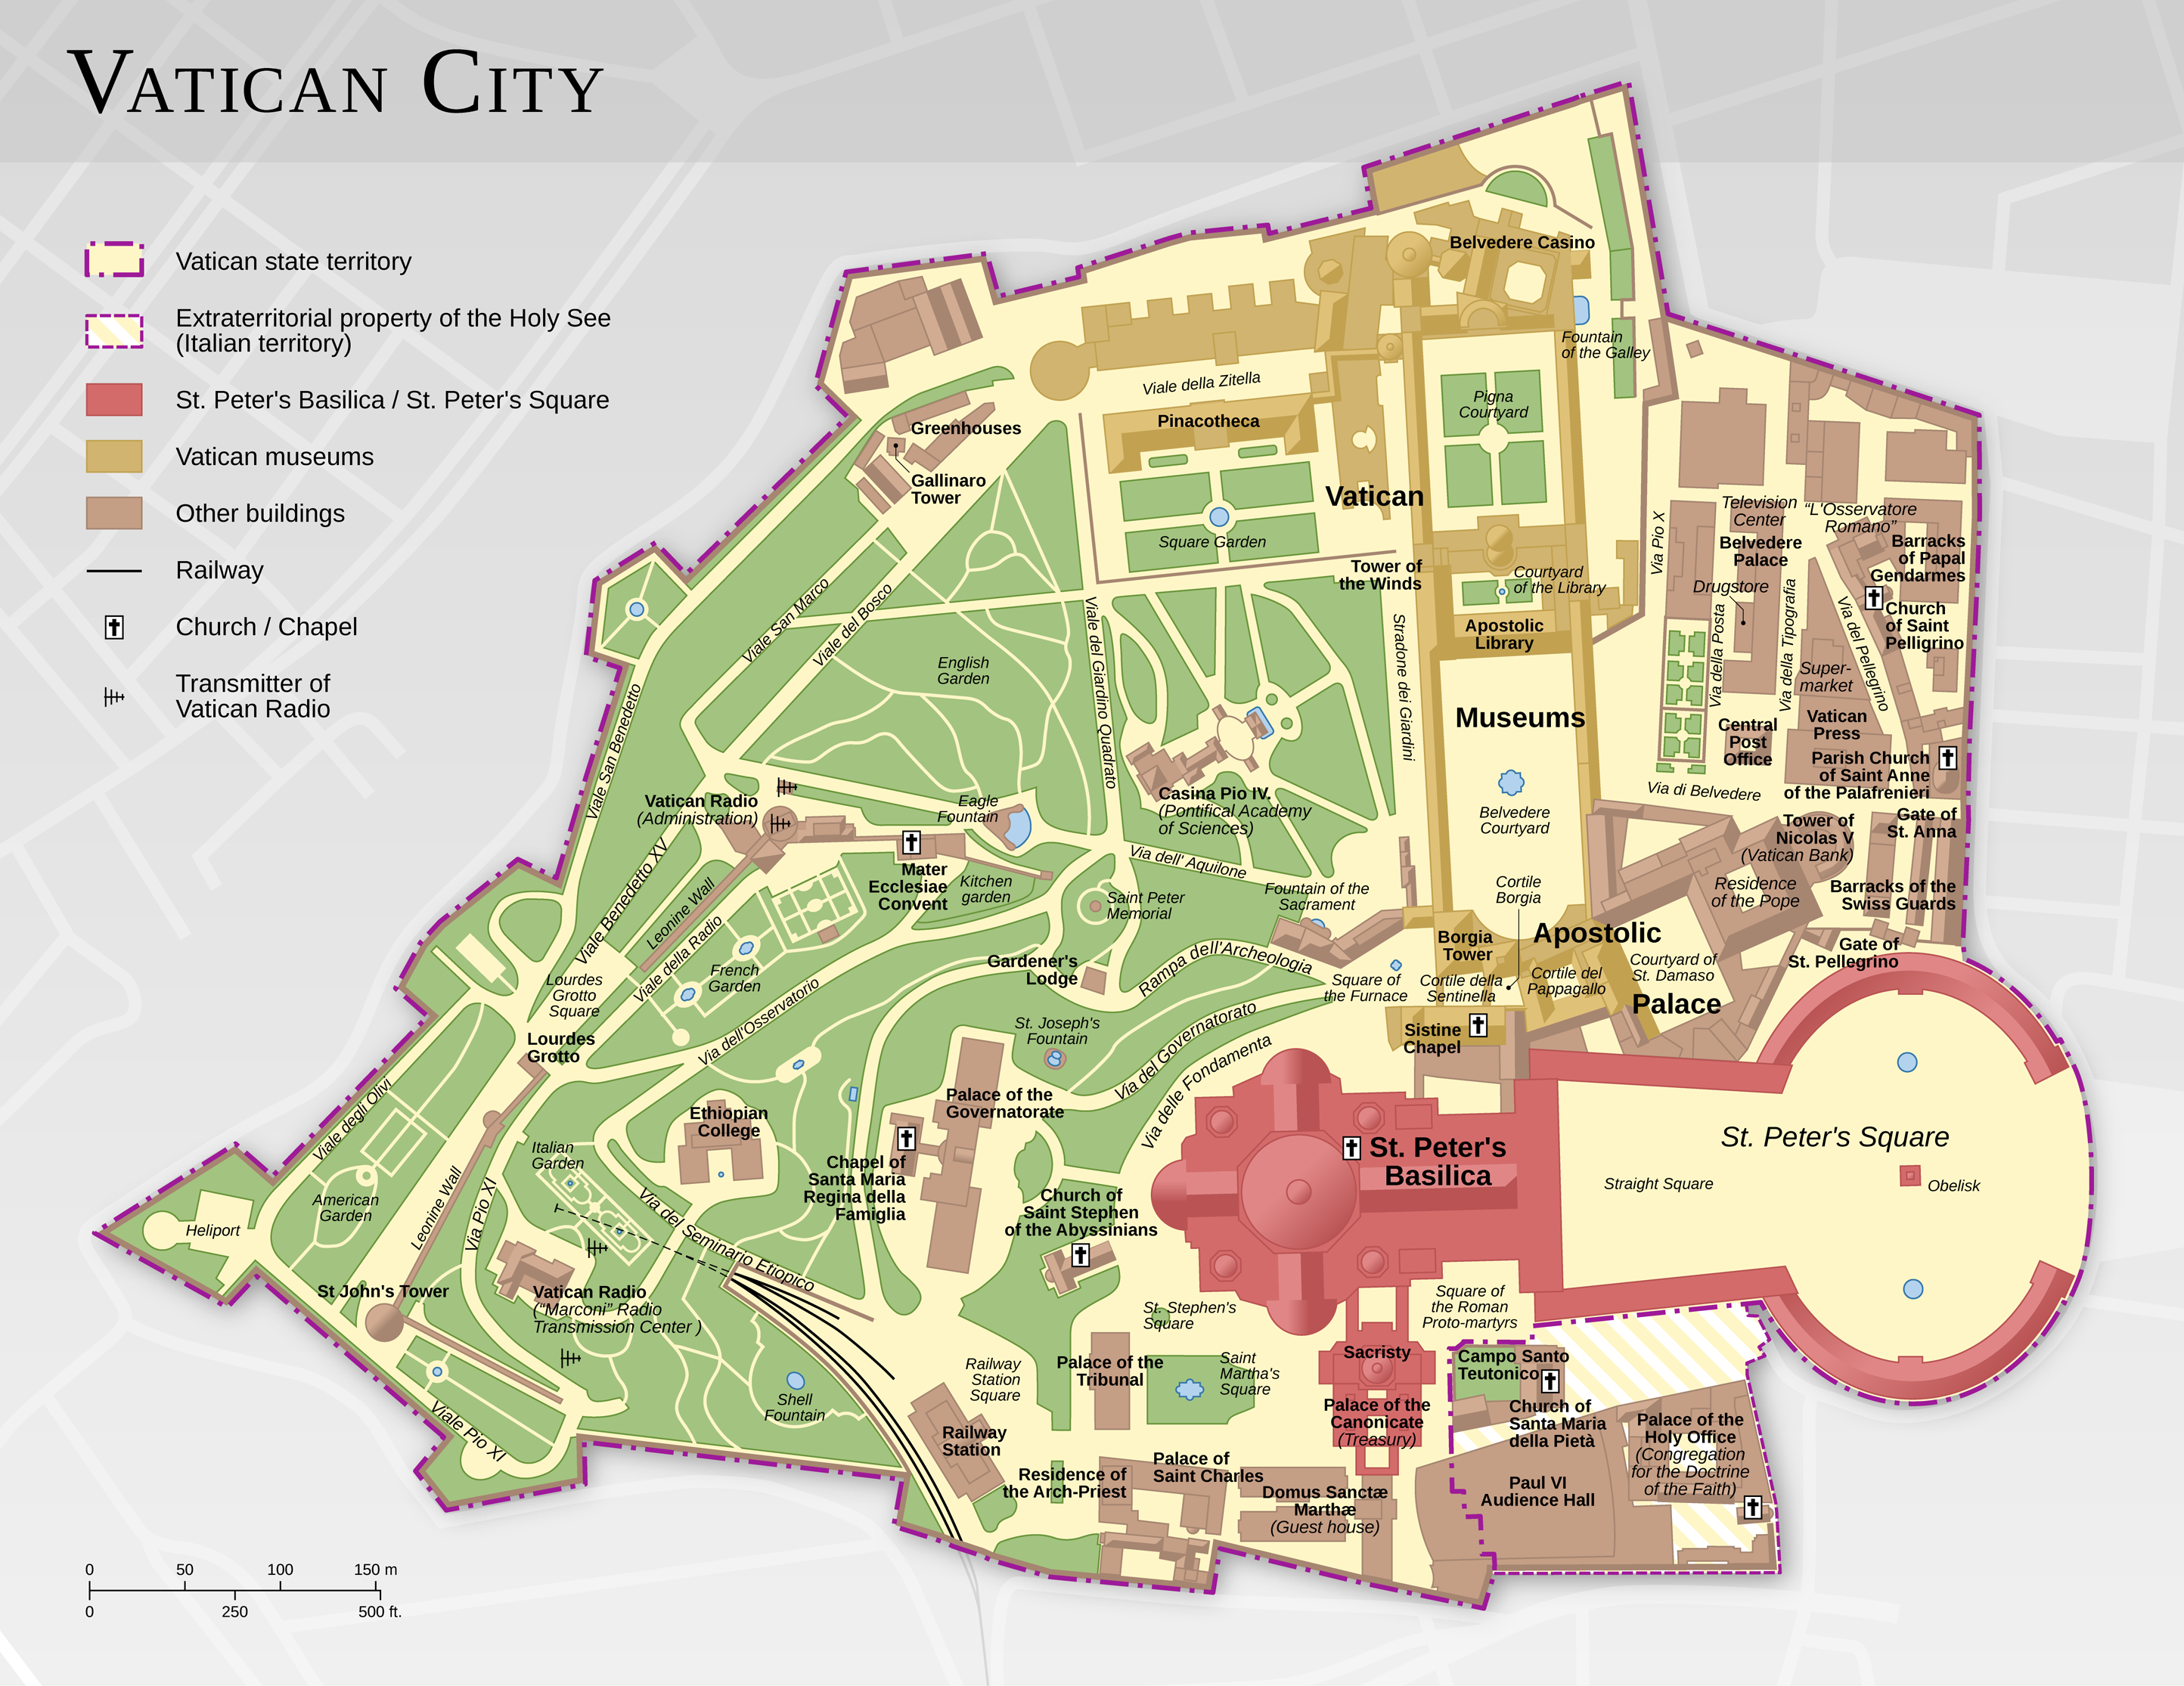 Map Of Vatican City File:Vatican City map EN.png   Wikipedia